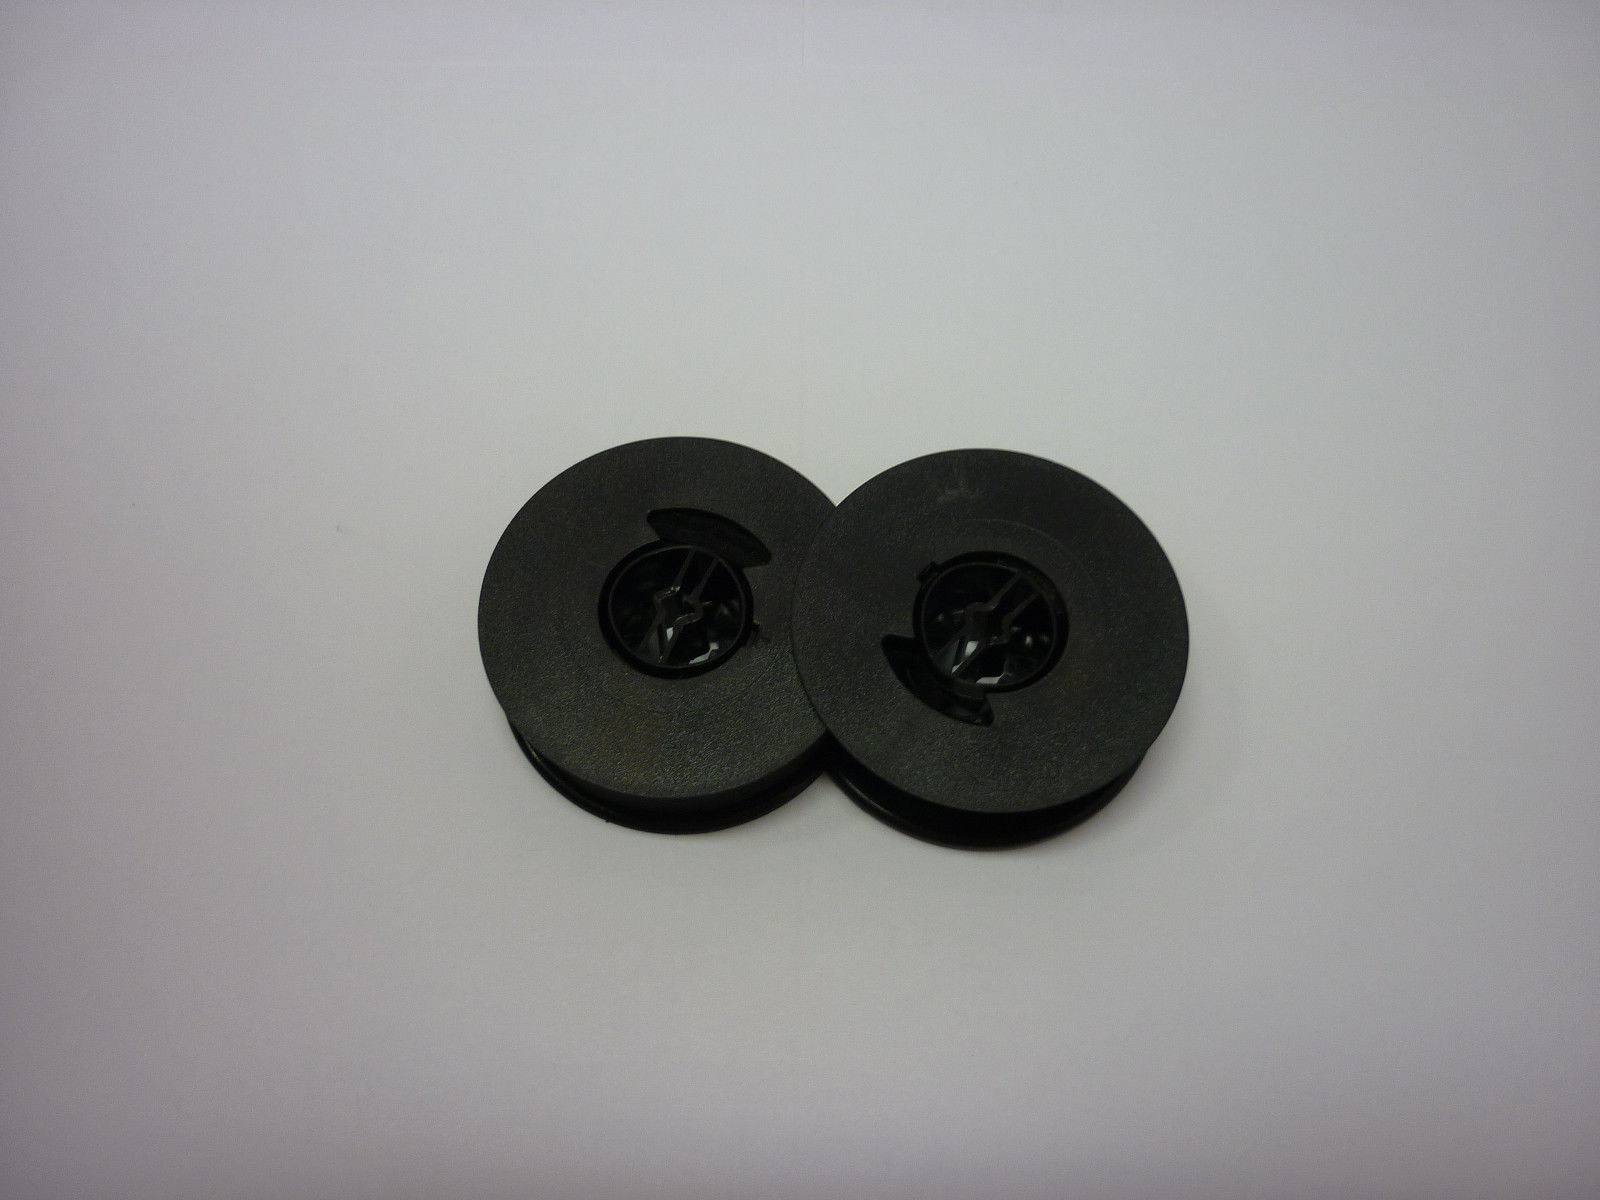 Brother 600 Deluxe 700 Deluxe Typewriter Ribbon Twin Spool Black (2 Pack)